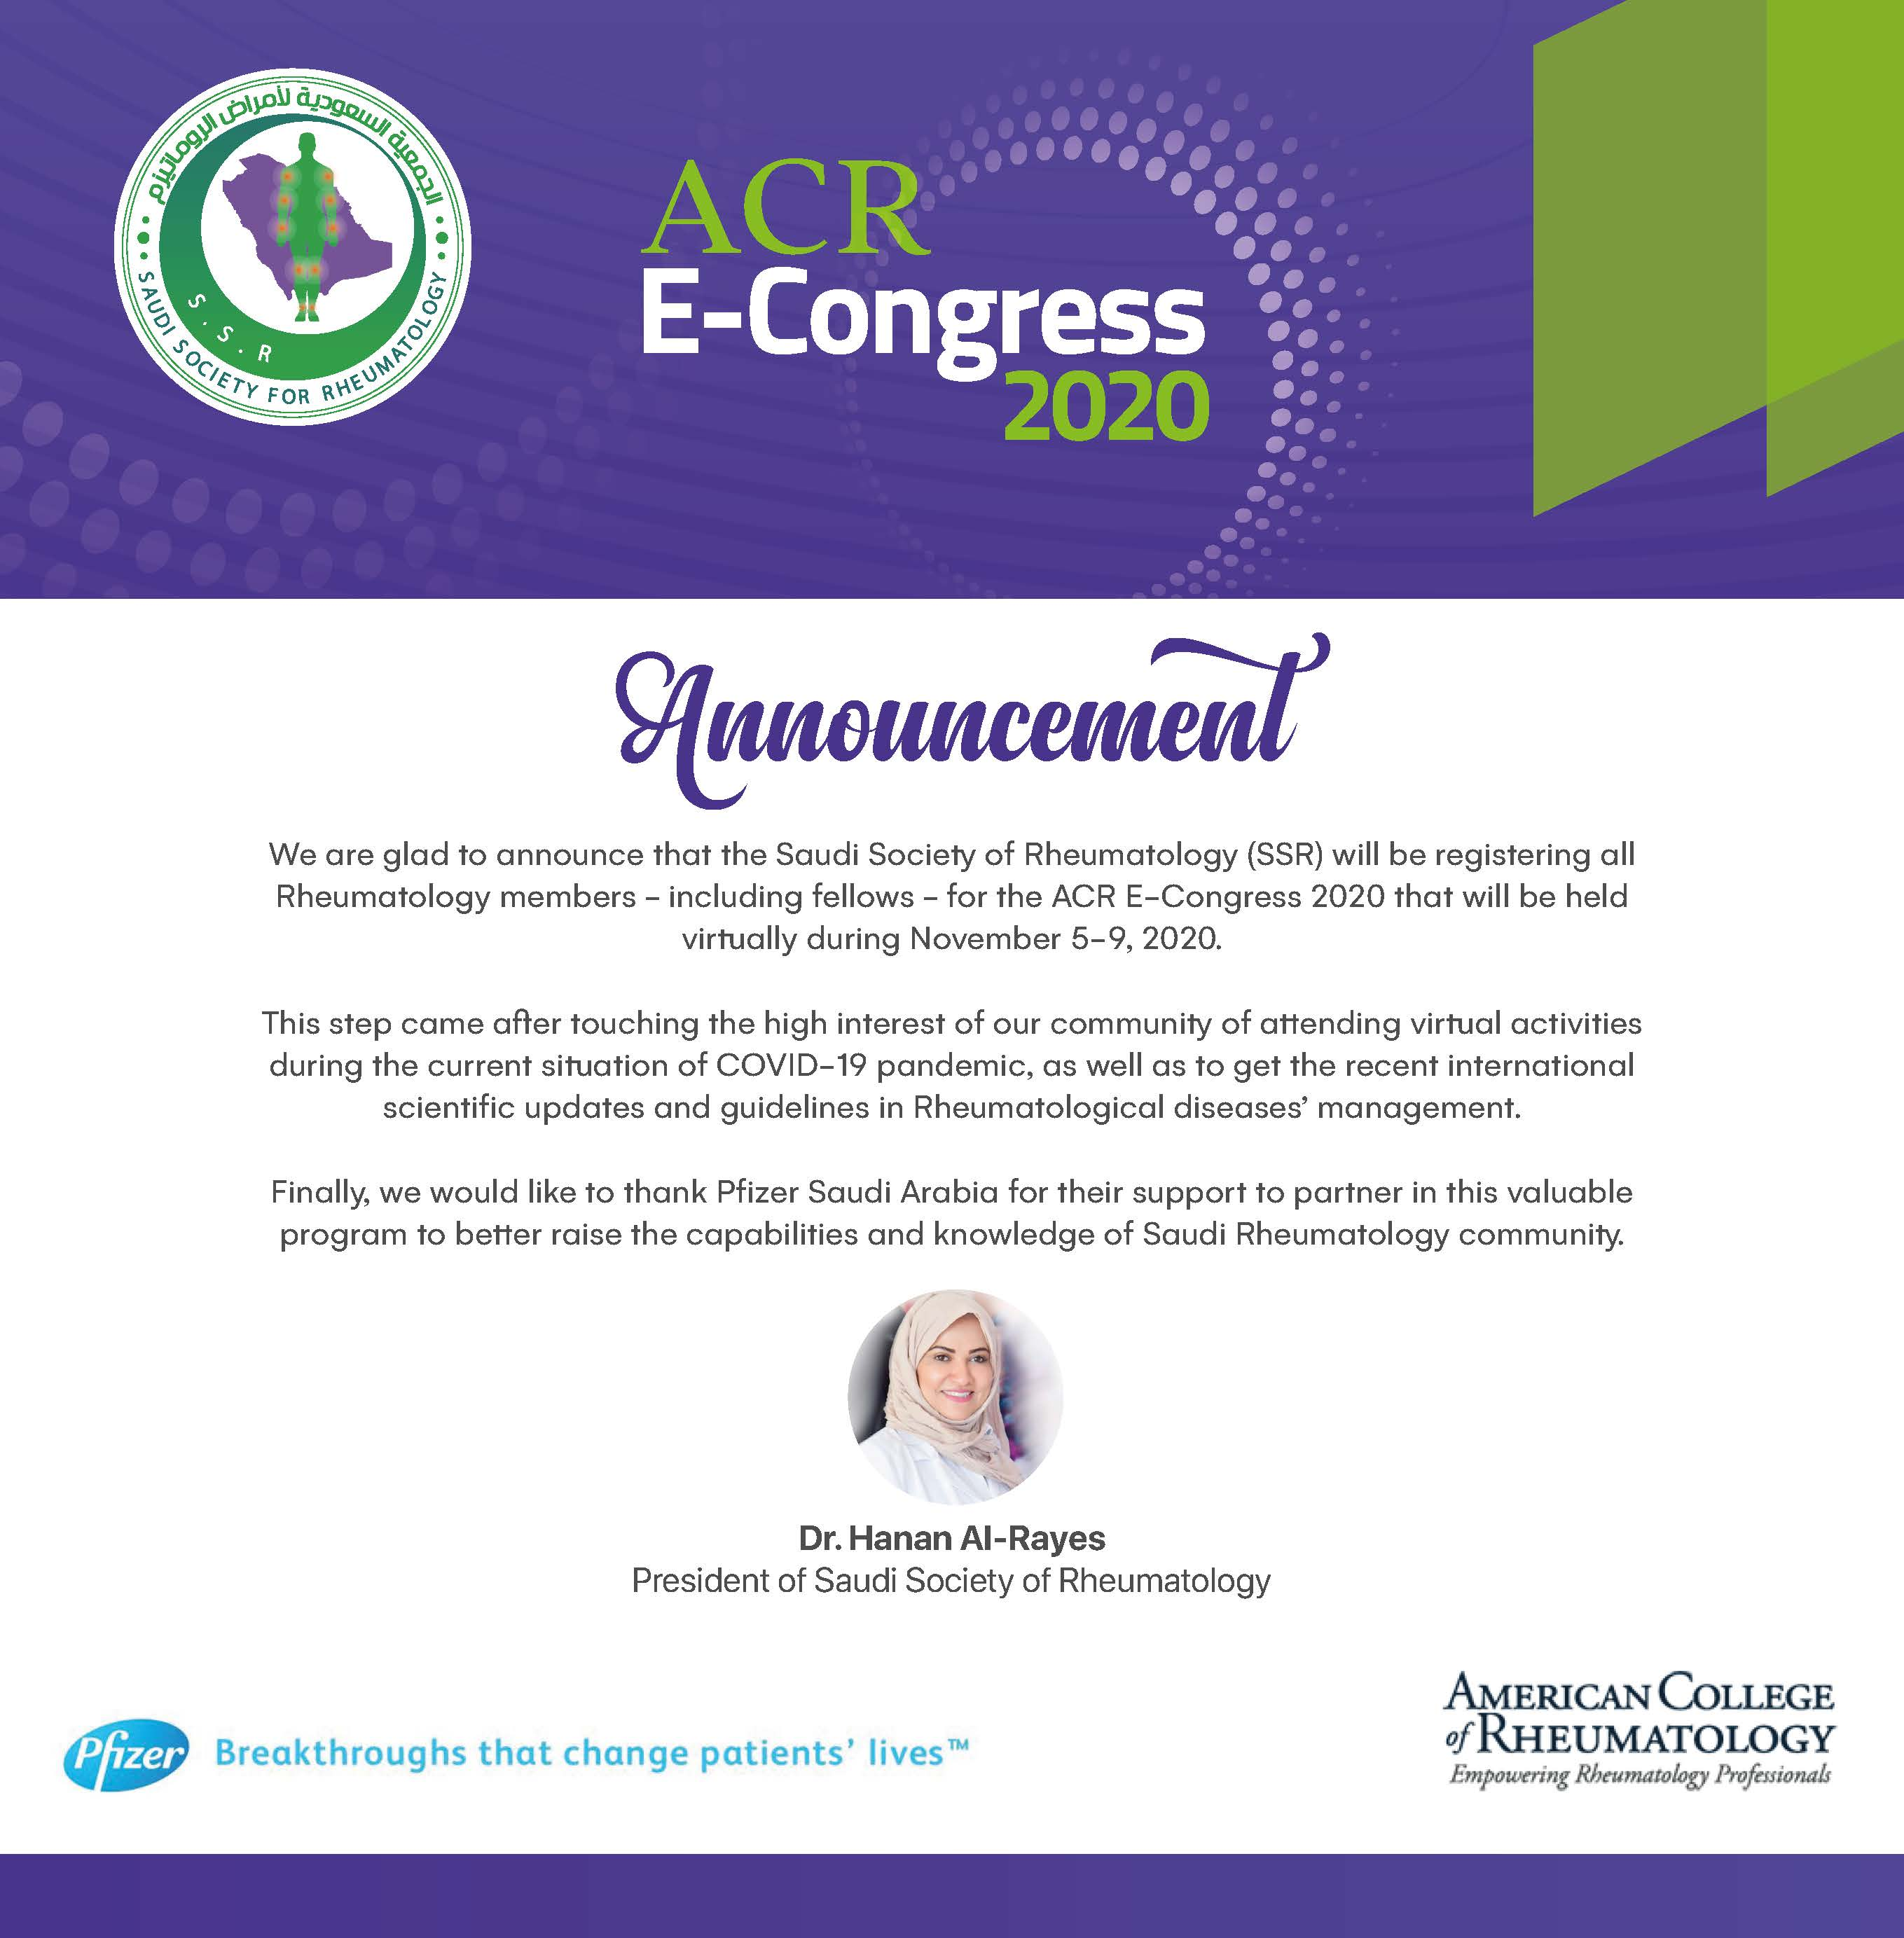 ACR E-Congress 2020